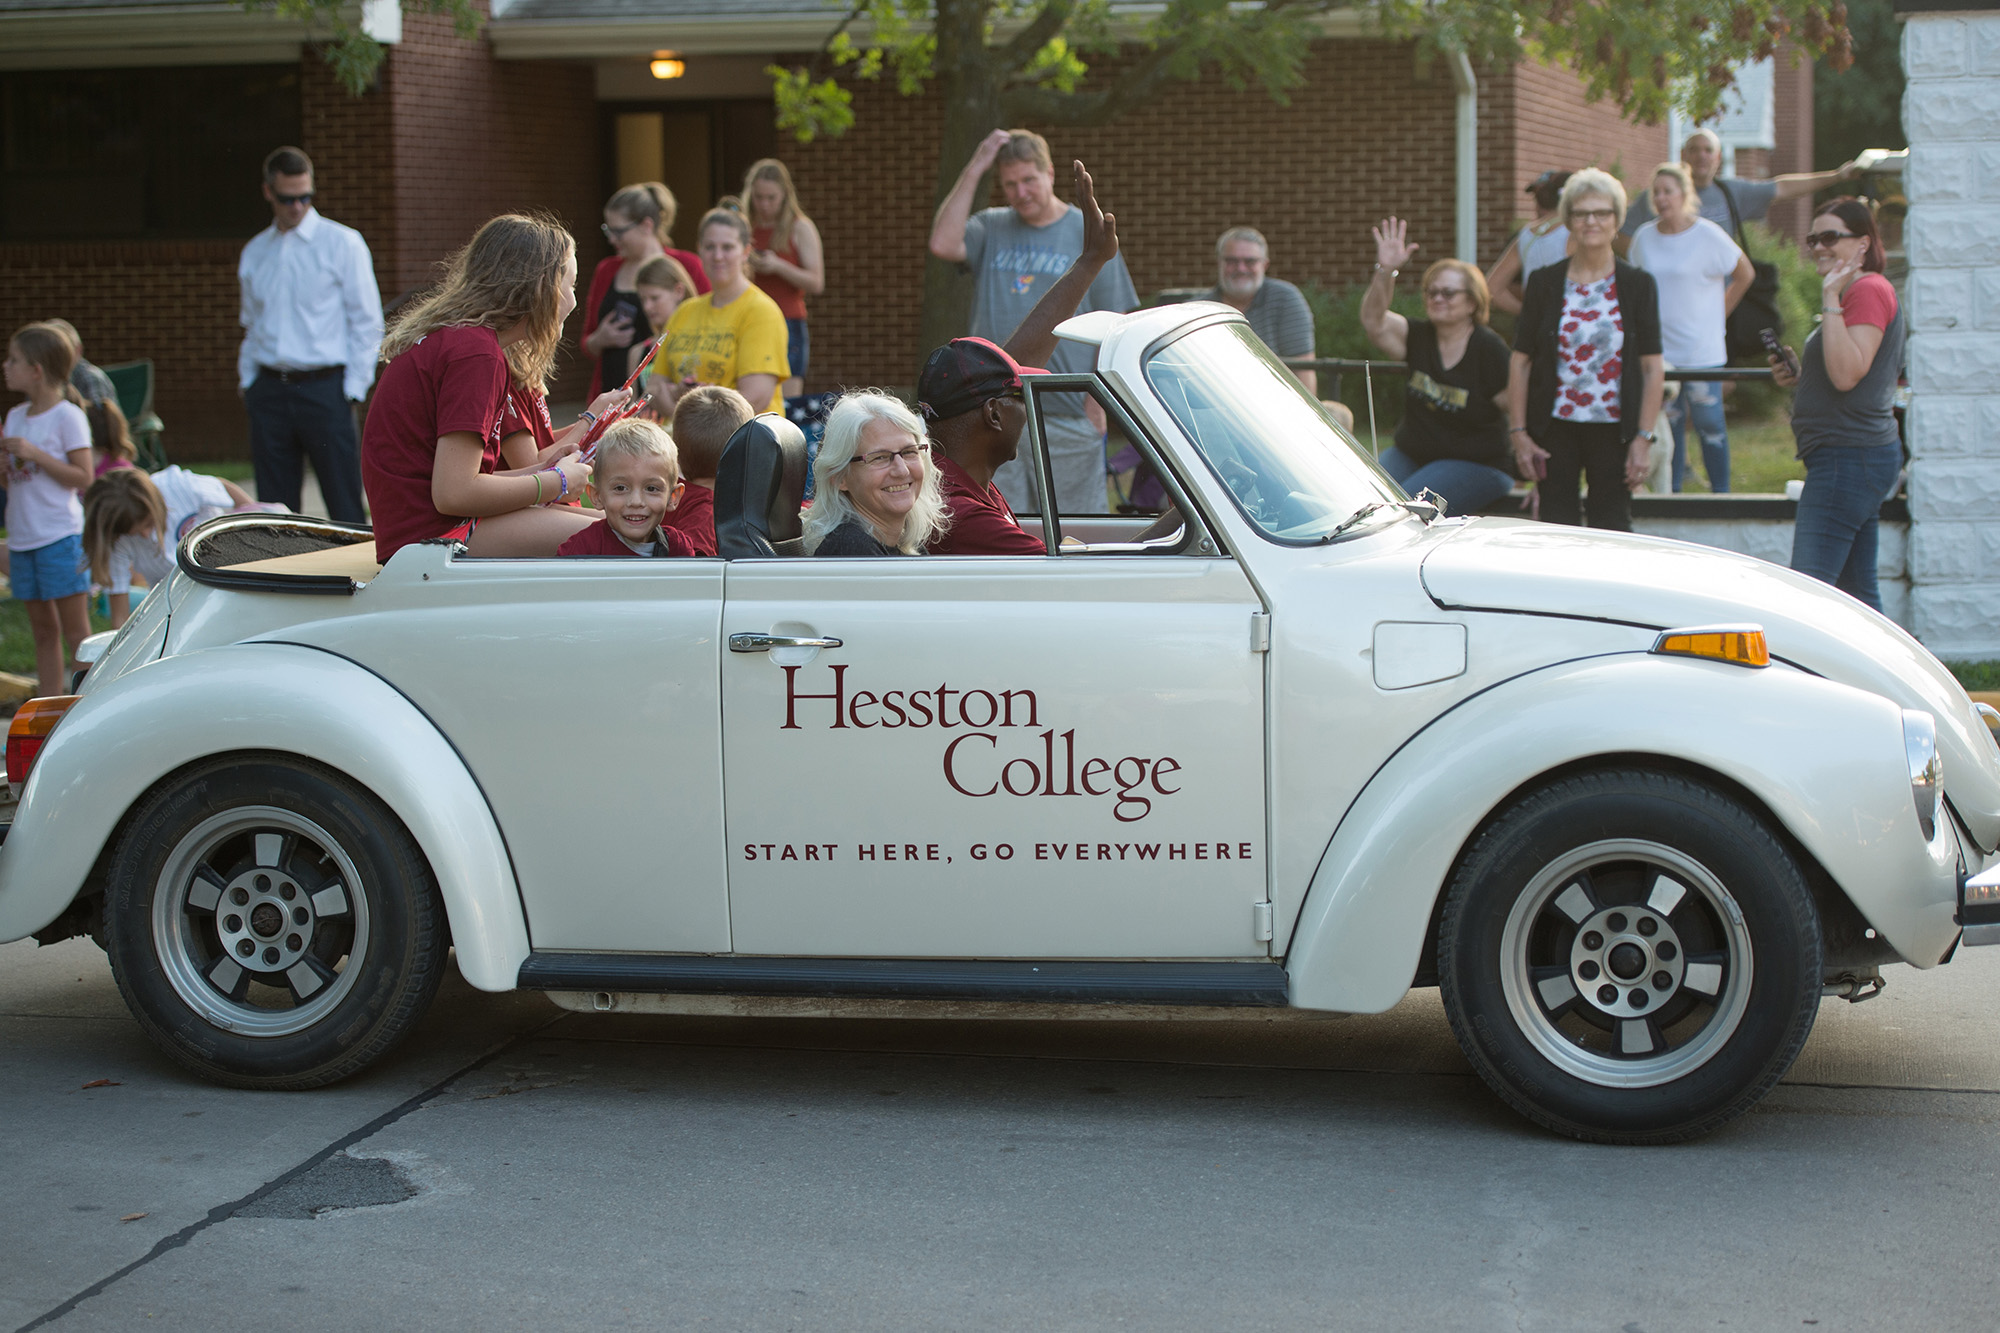 Hesston College President Joe and Wanda Manickam drive the HC bug in the Home Sweet Hesston parade.